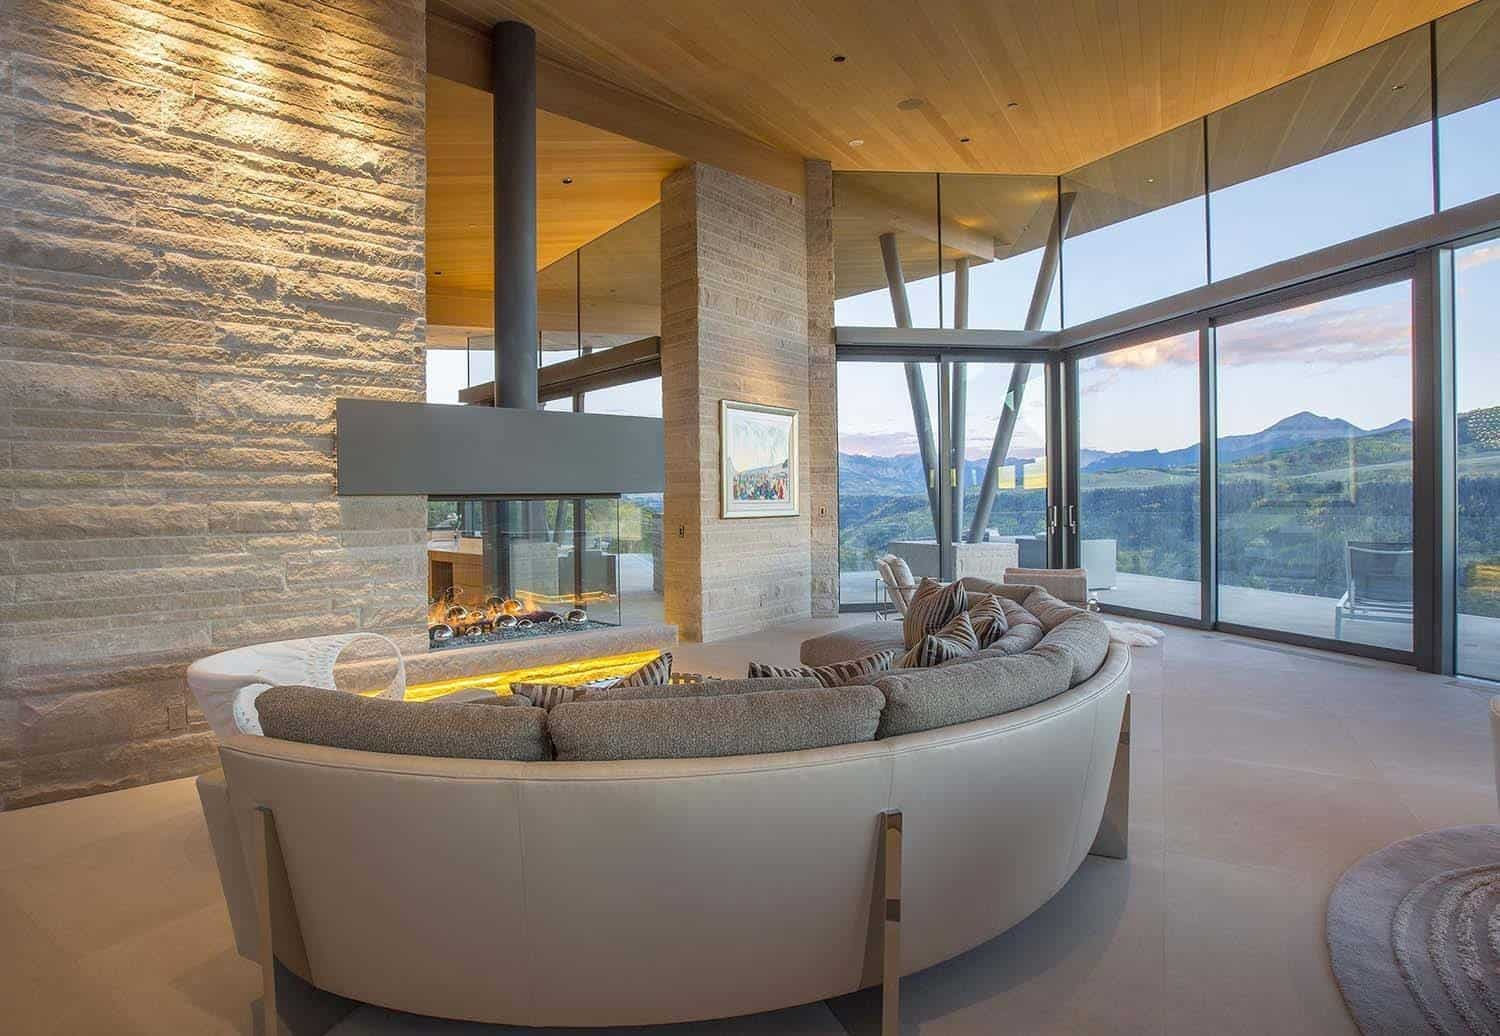 Modern-Residence-Colorado-Poss Architecture-13-1 Kindesign